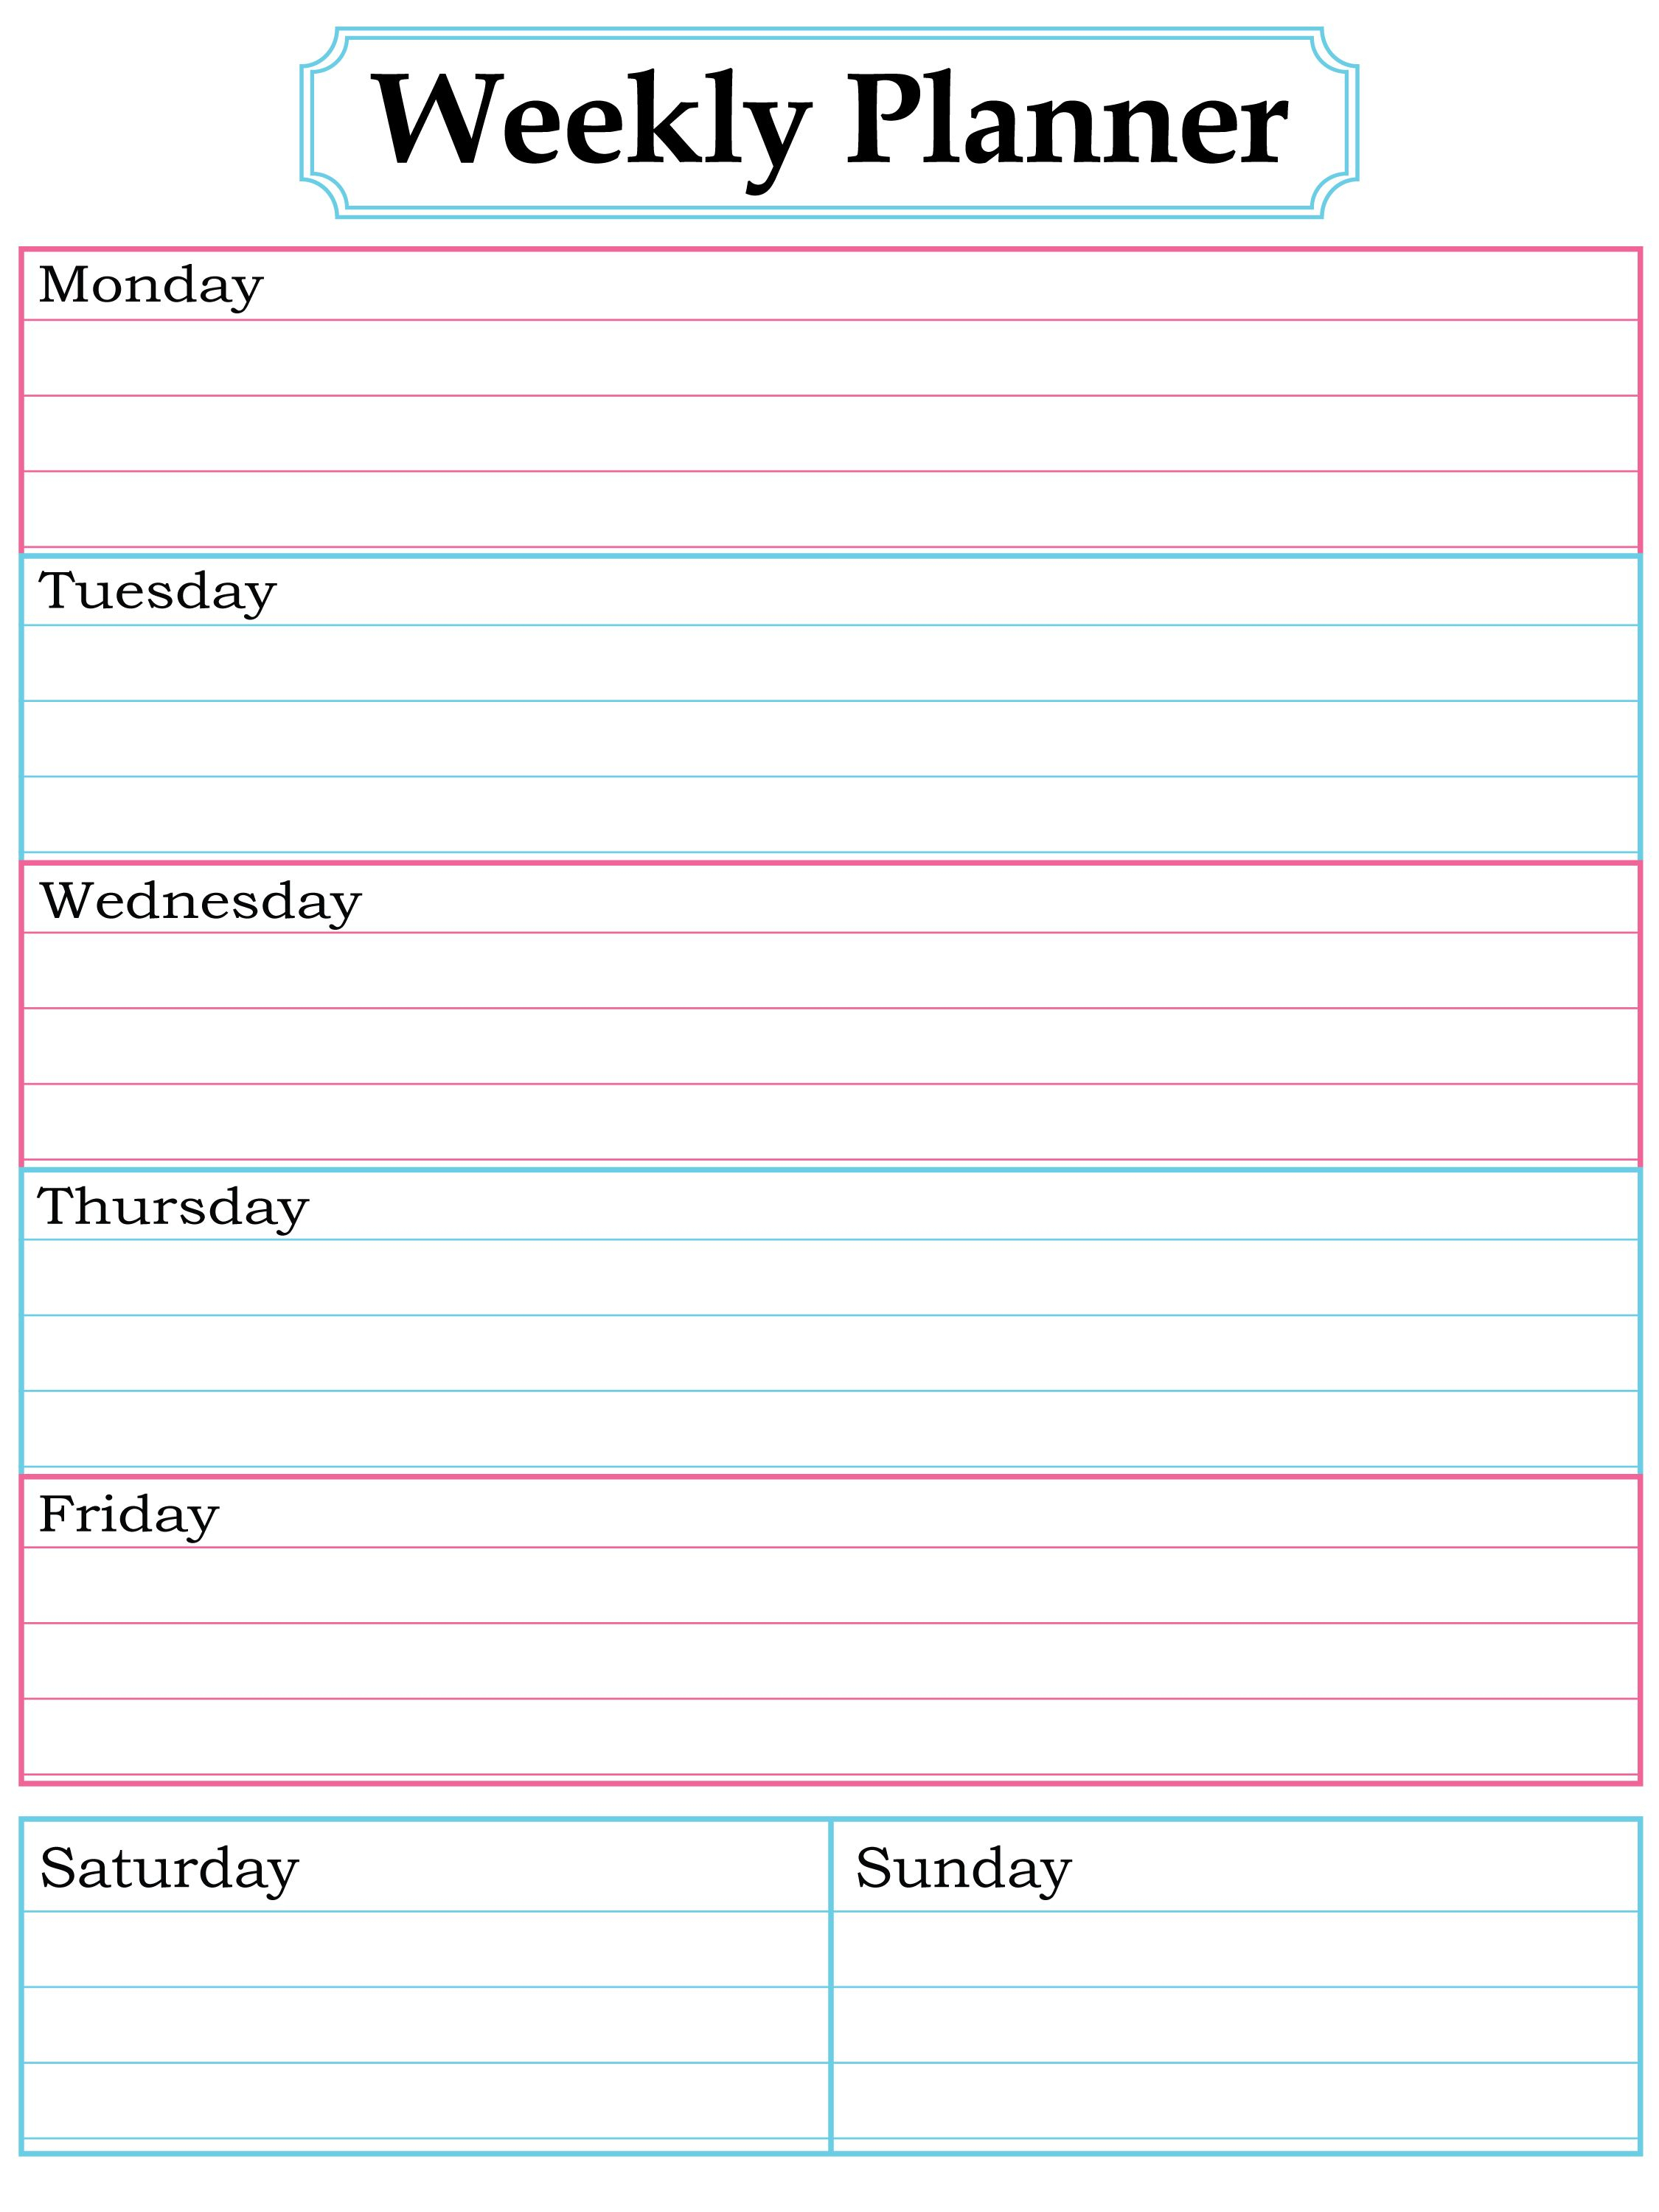 Free Weekly Planner Printable | Journal And Papercraft